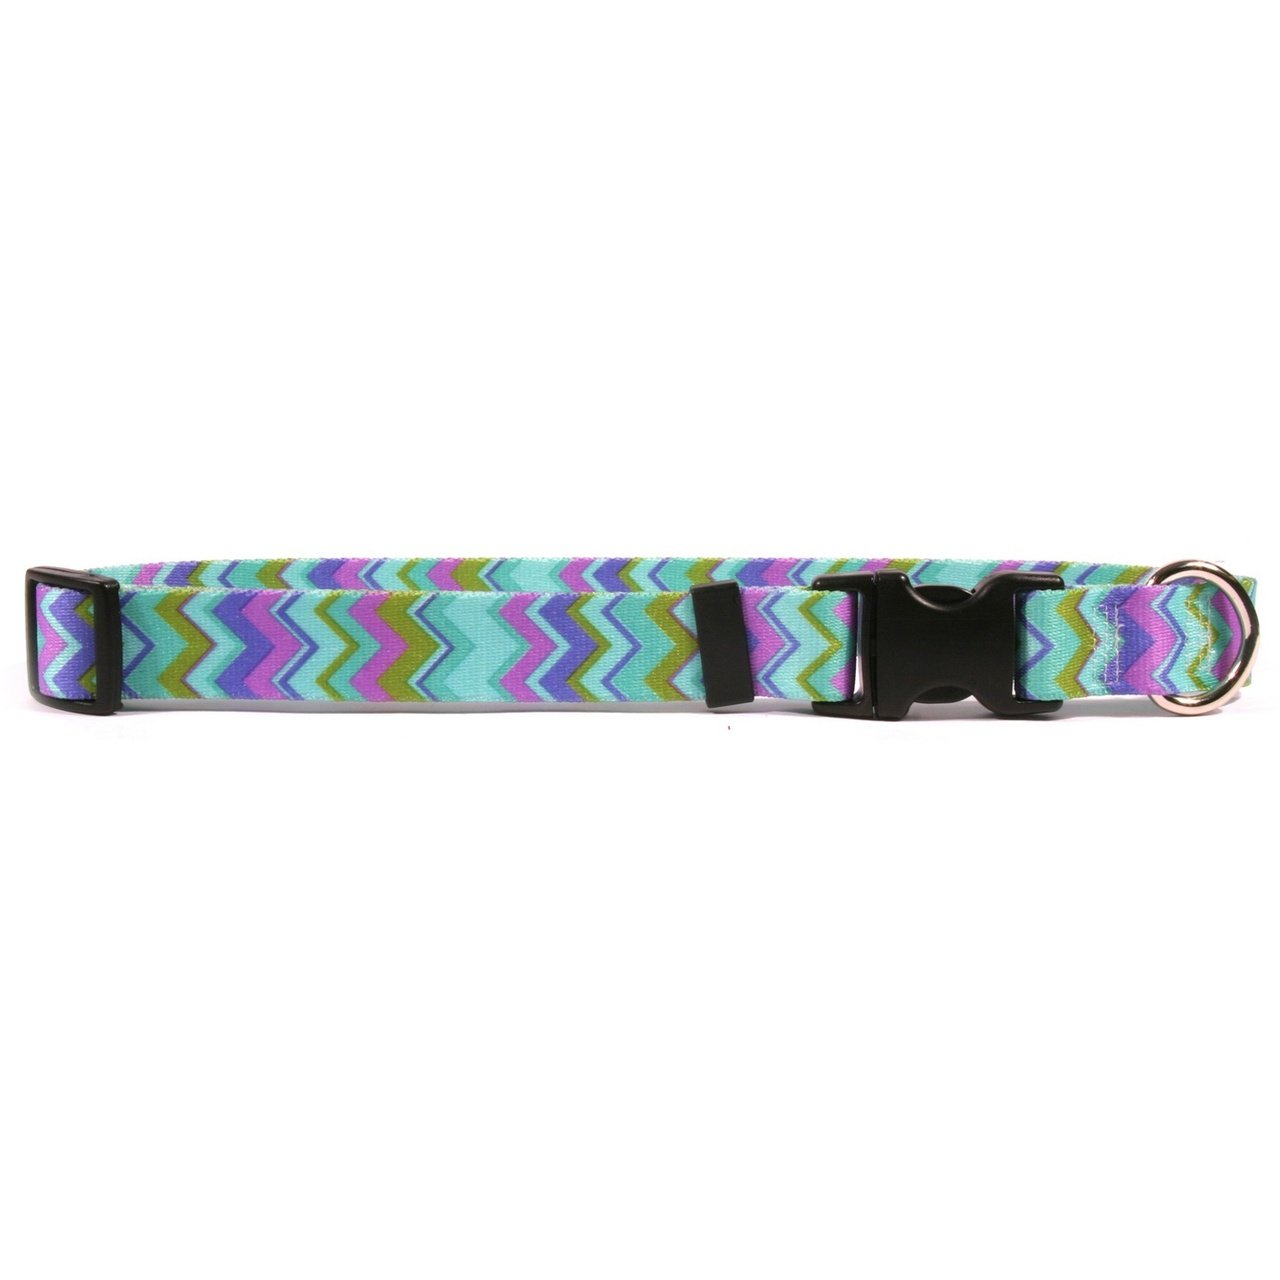 Yellow Dog Design Chevy Stripe Blue Dog Collar 3/4'' Wide and Fits Neck 10 to 14'', Small